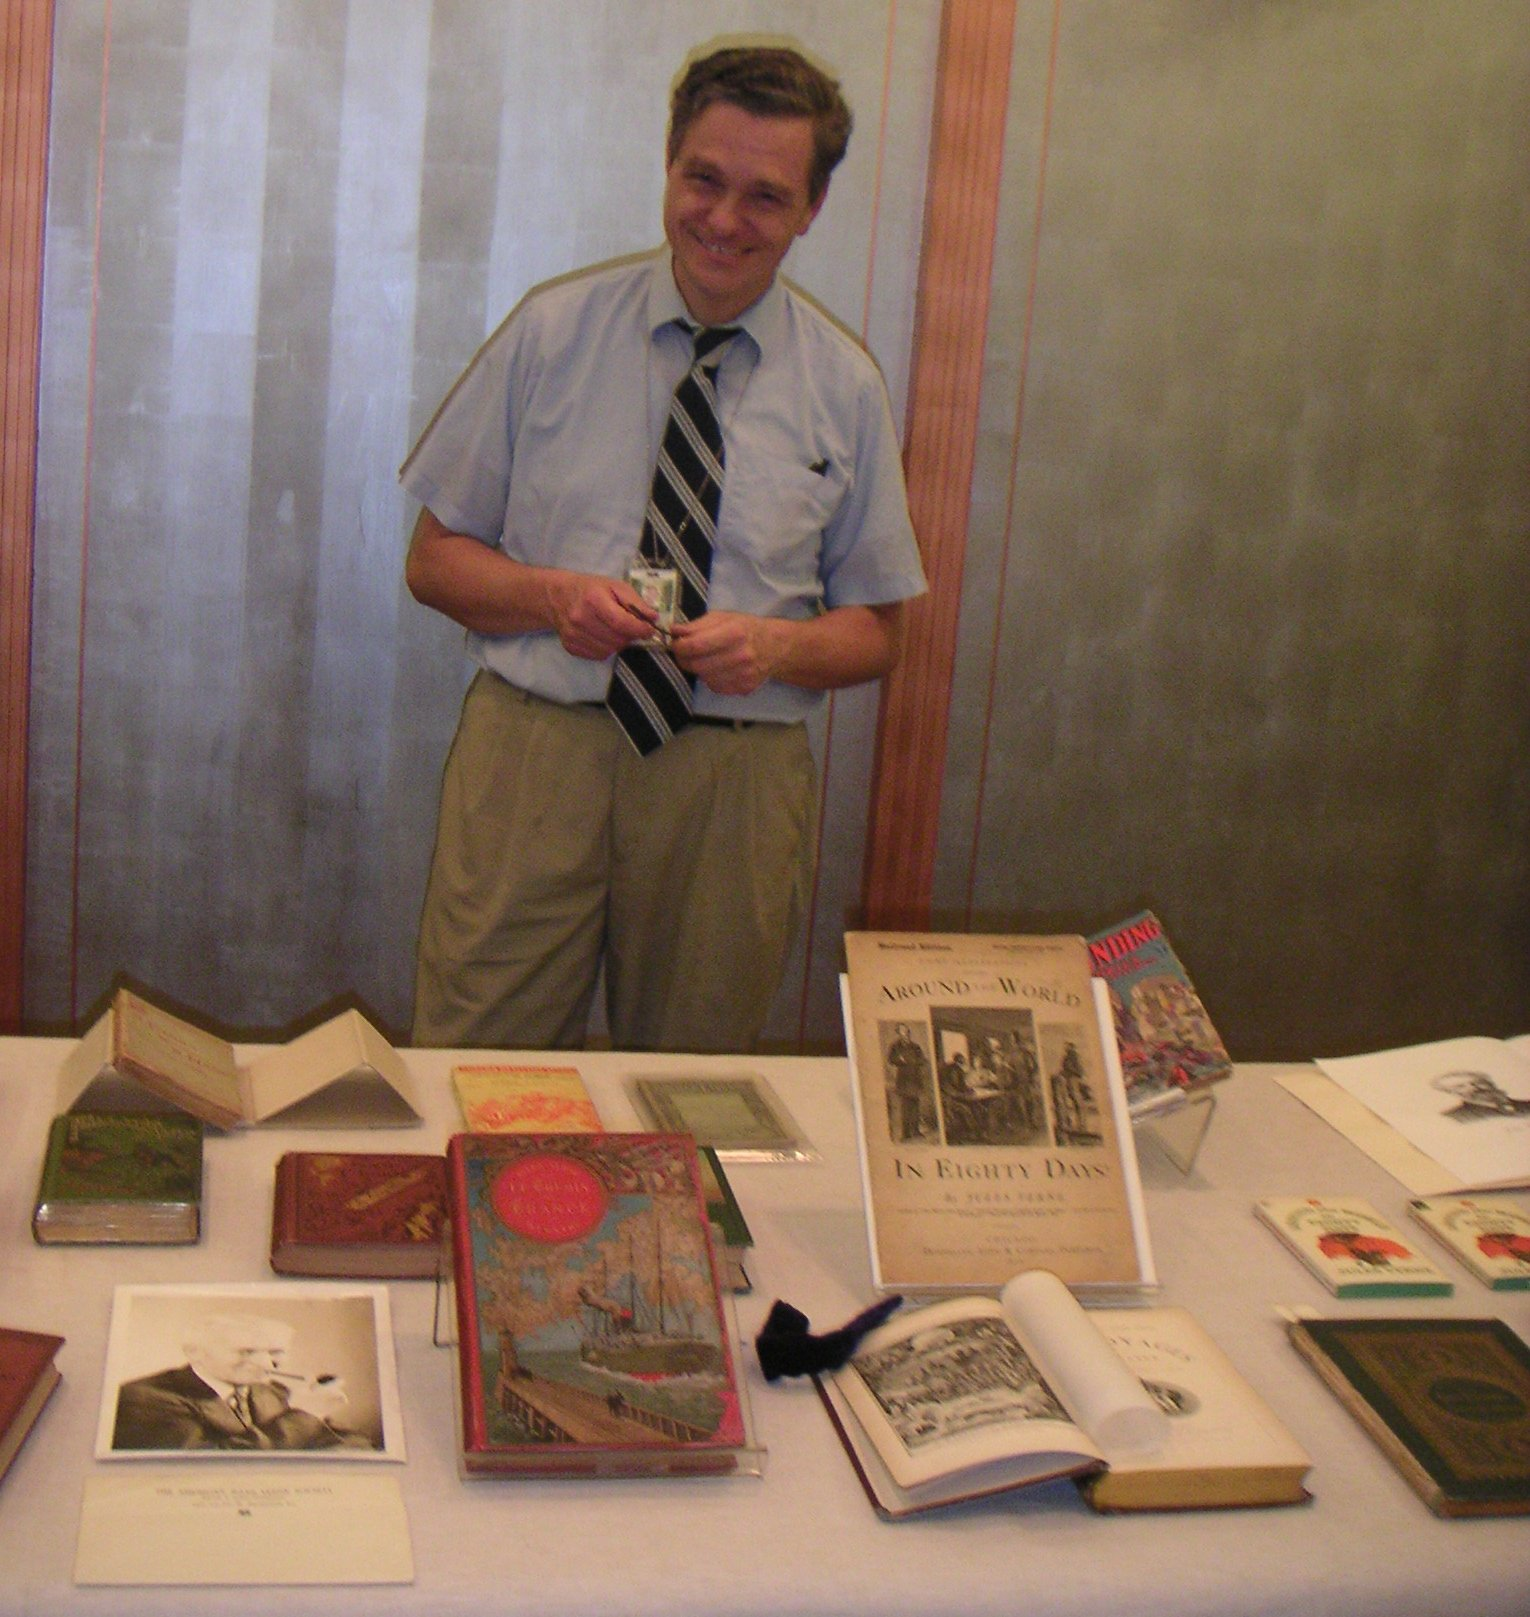 RareBooks1.jpg - Clark Evans of the Library's Rare Books collection shows some of their Verne Holdings.